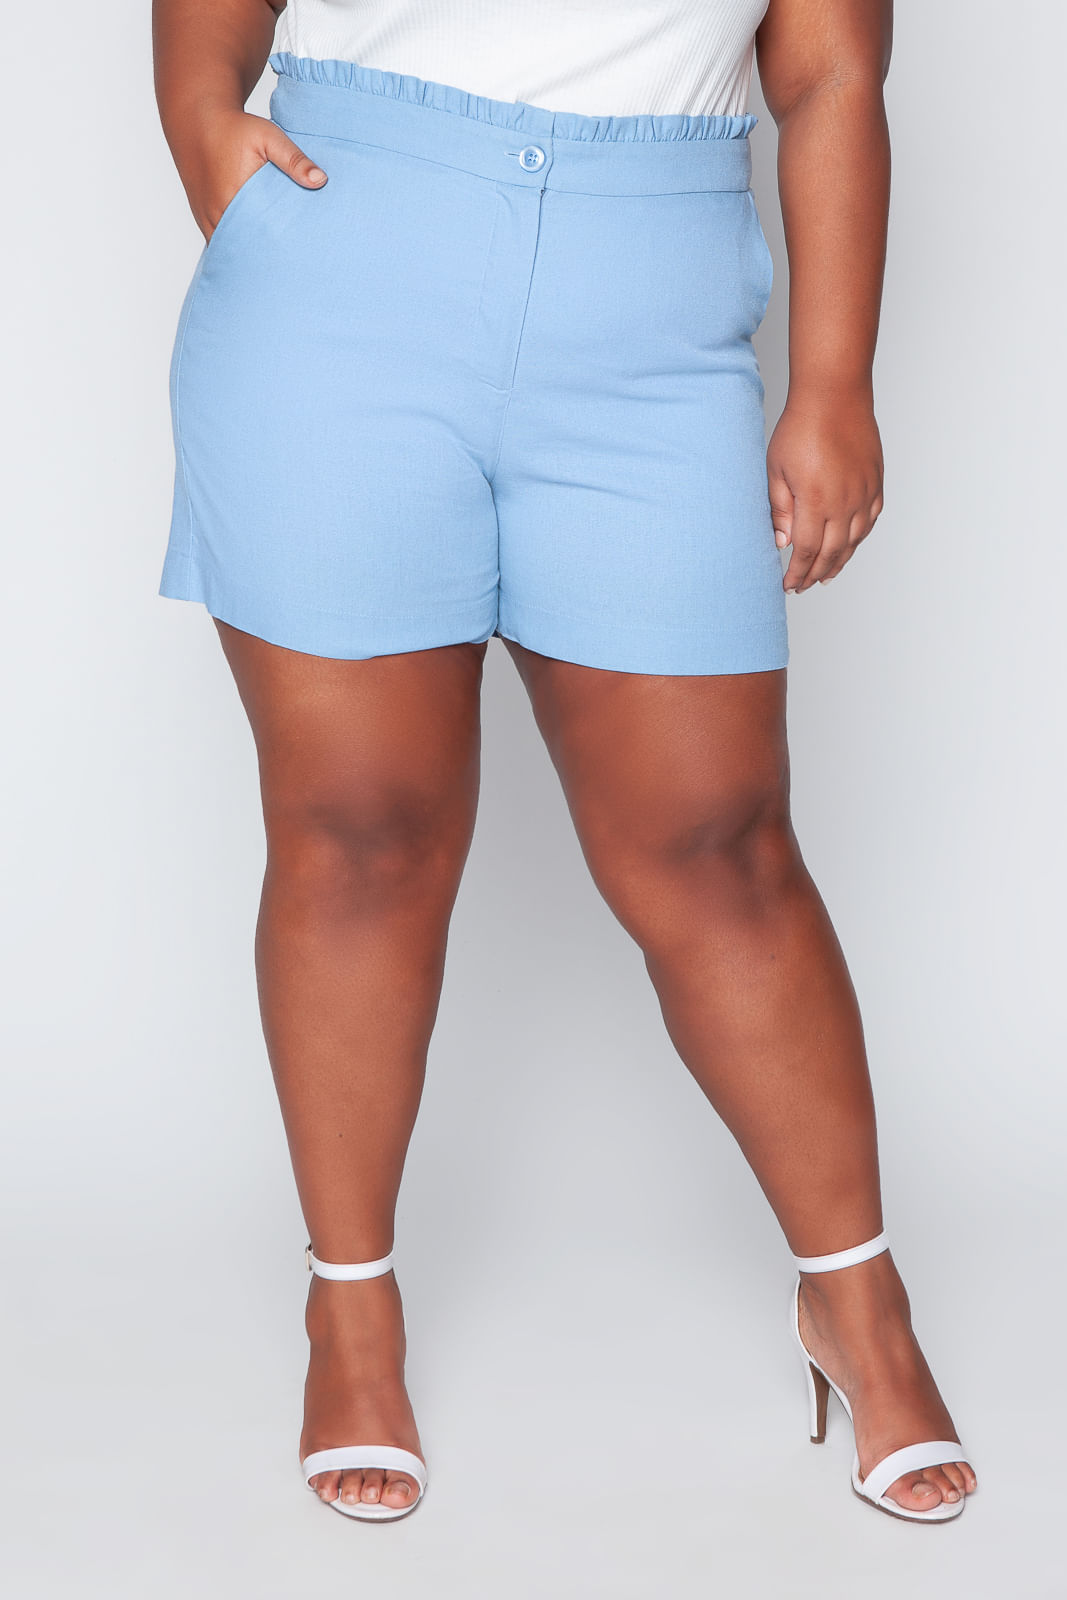 T039_Shorts_Plus_Size_Clochard_Linho_Azul_Celeste_2